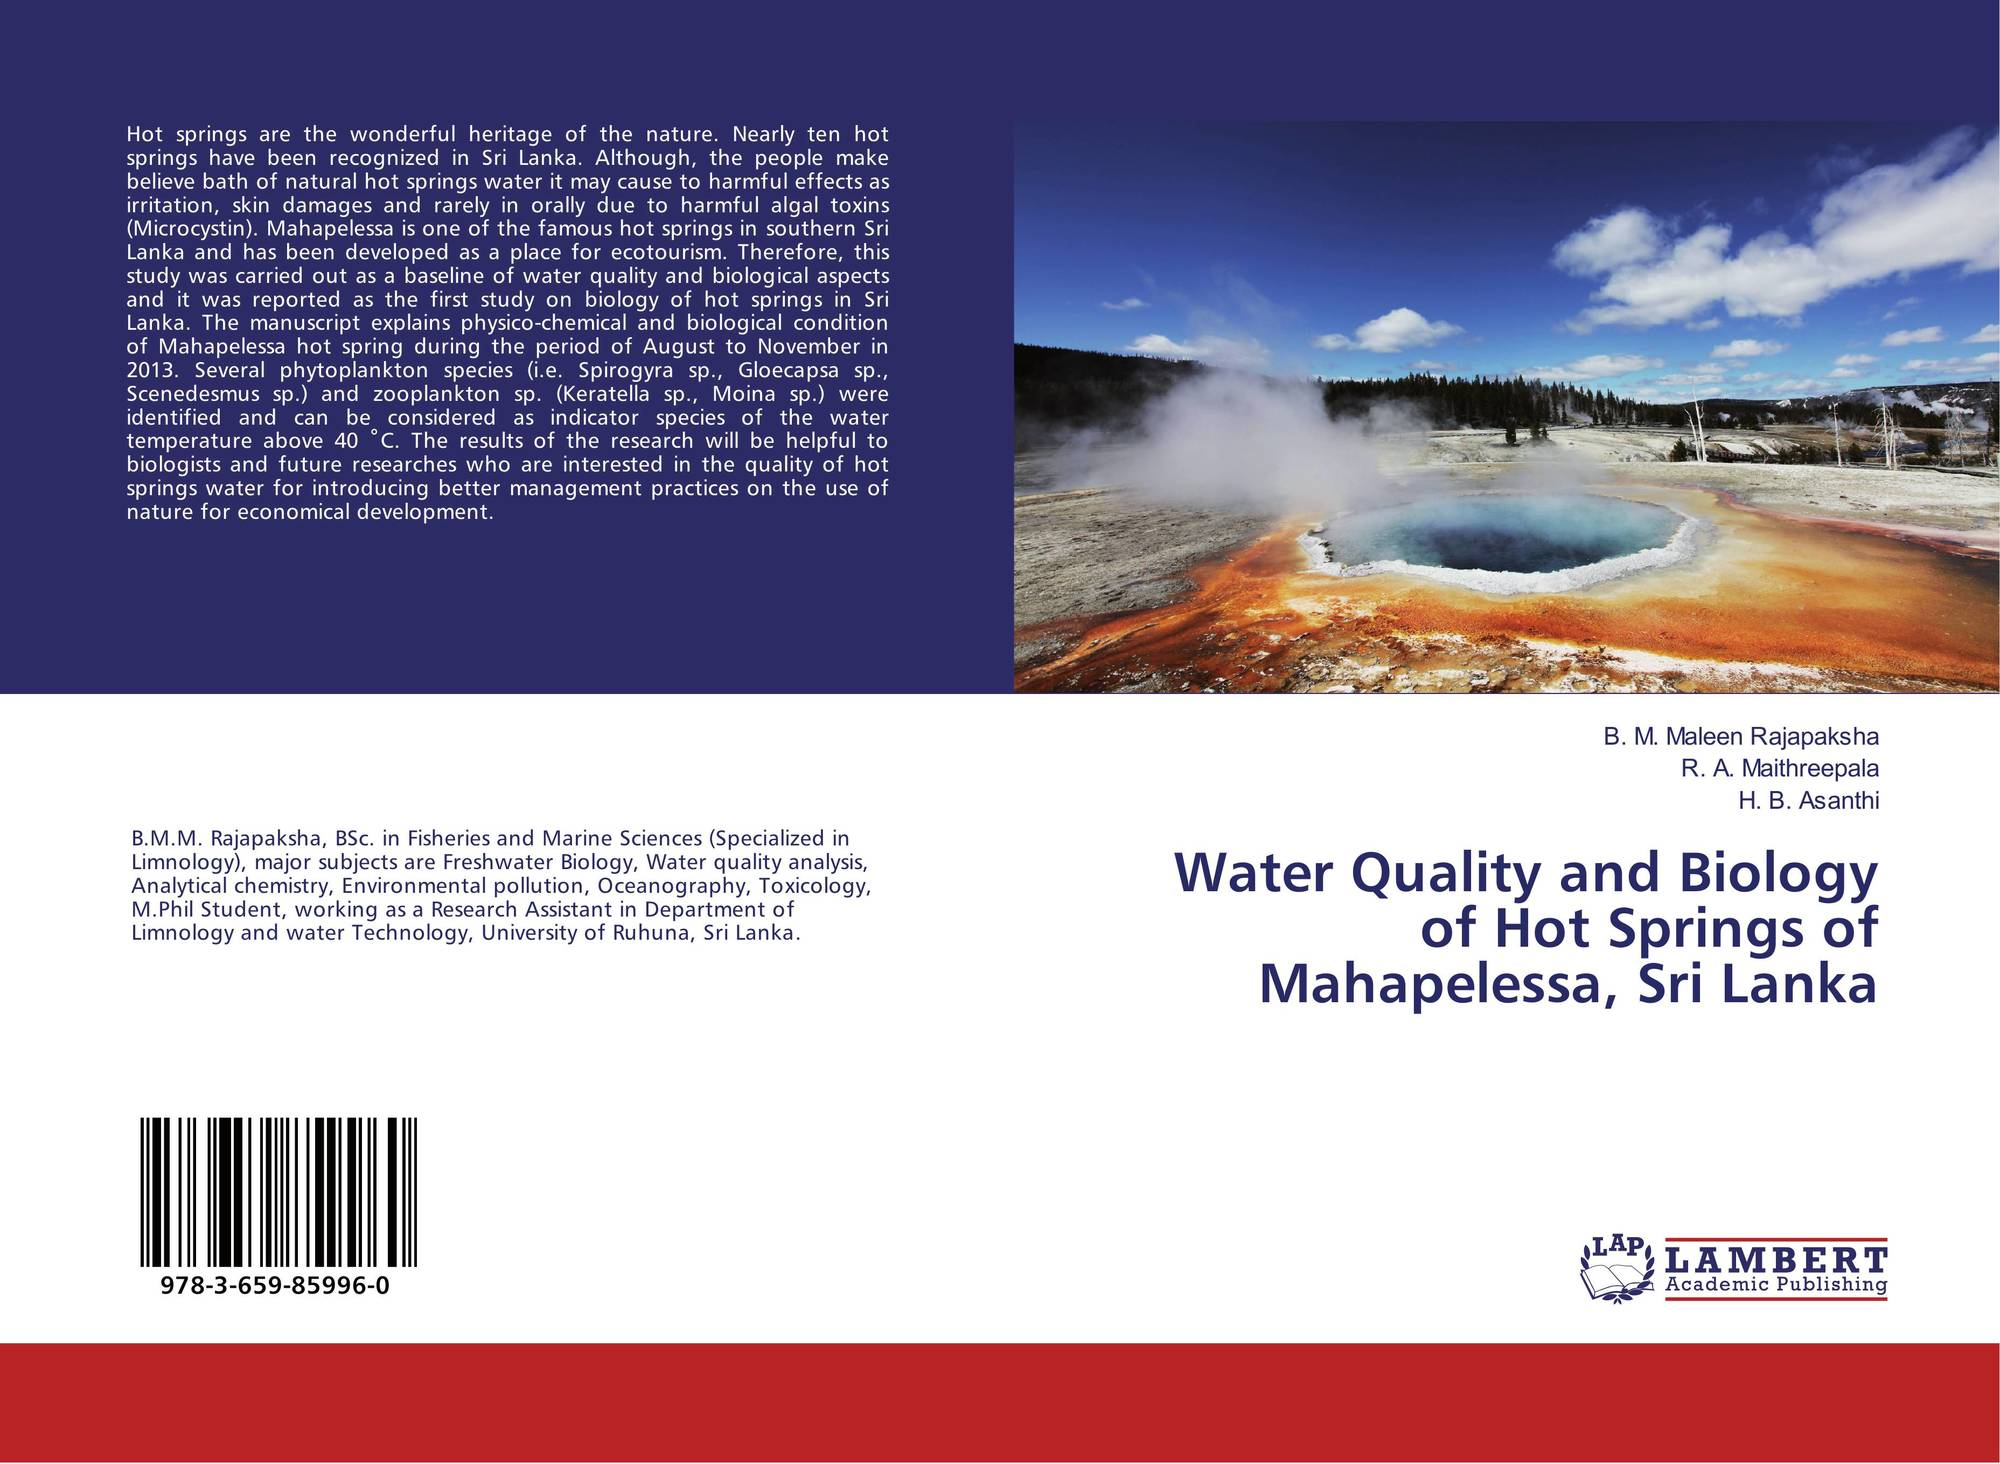 Water Quality and Biology of Hot Springs of Mahapelessa, Sri